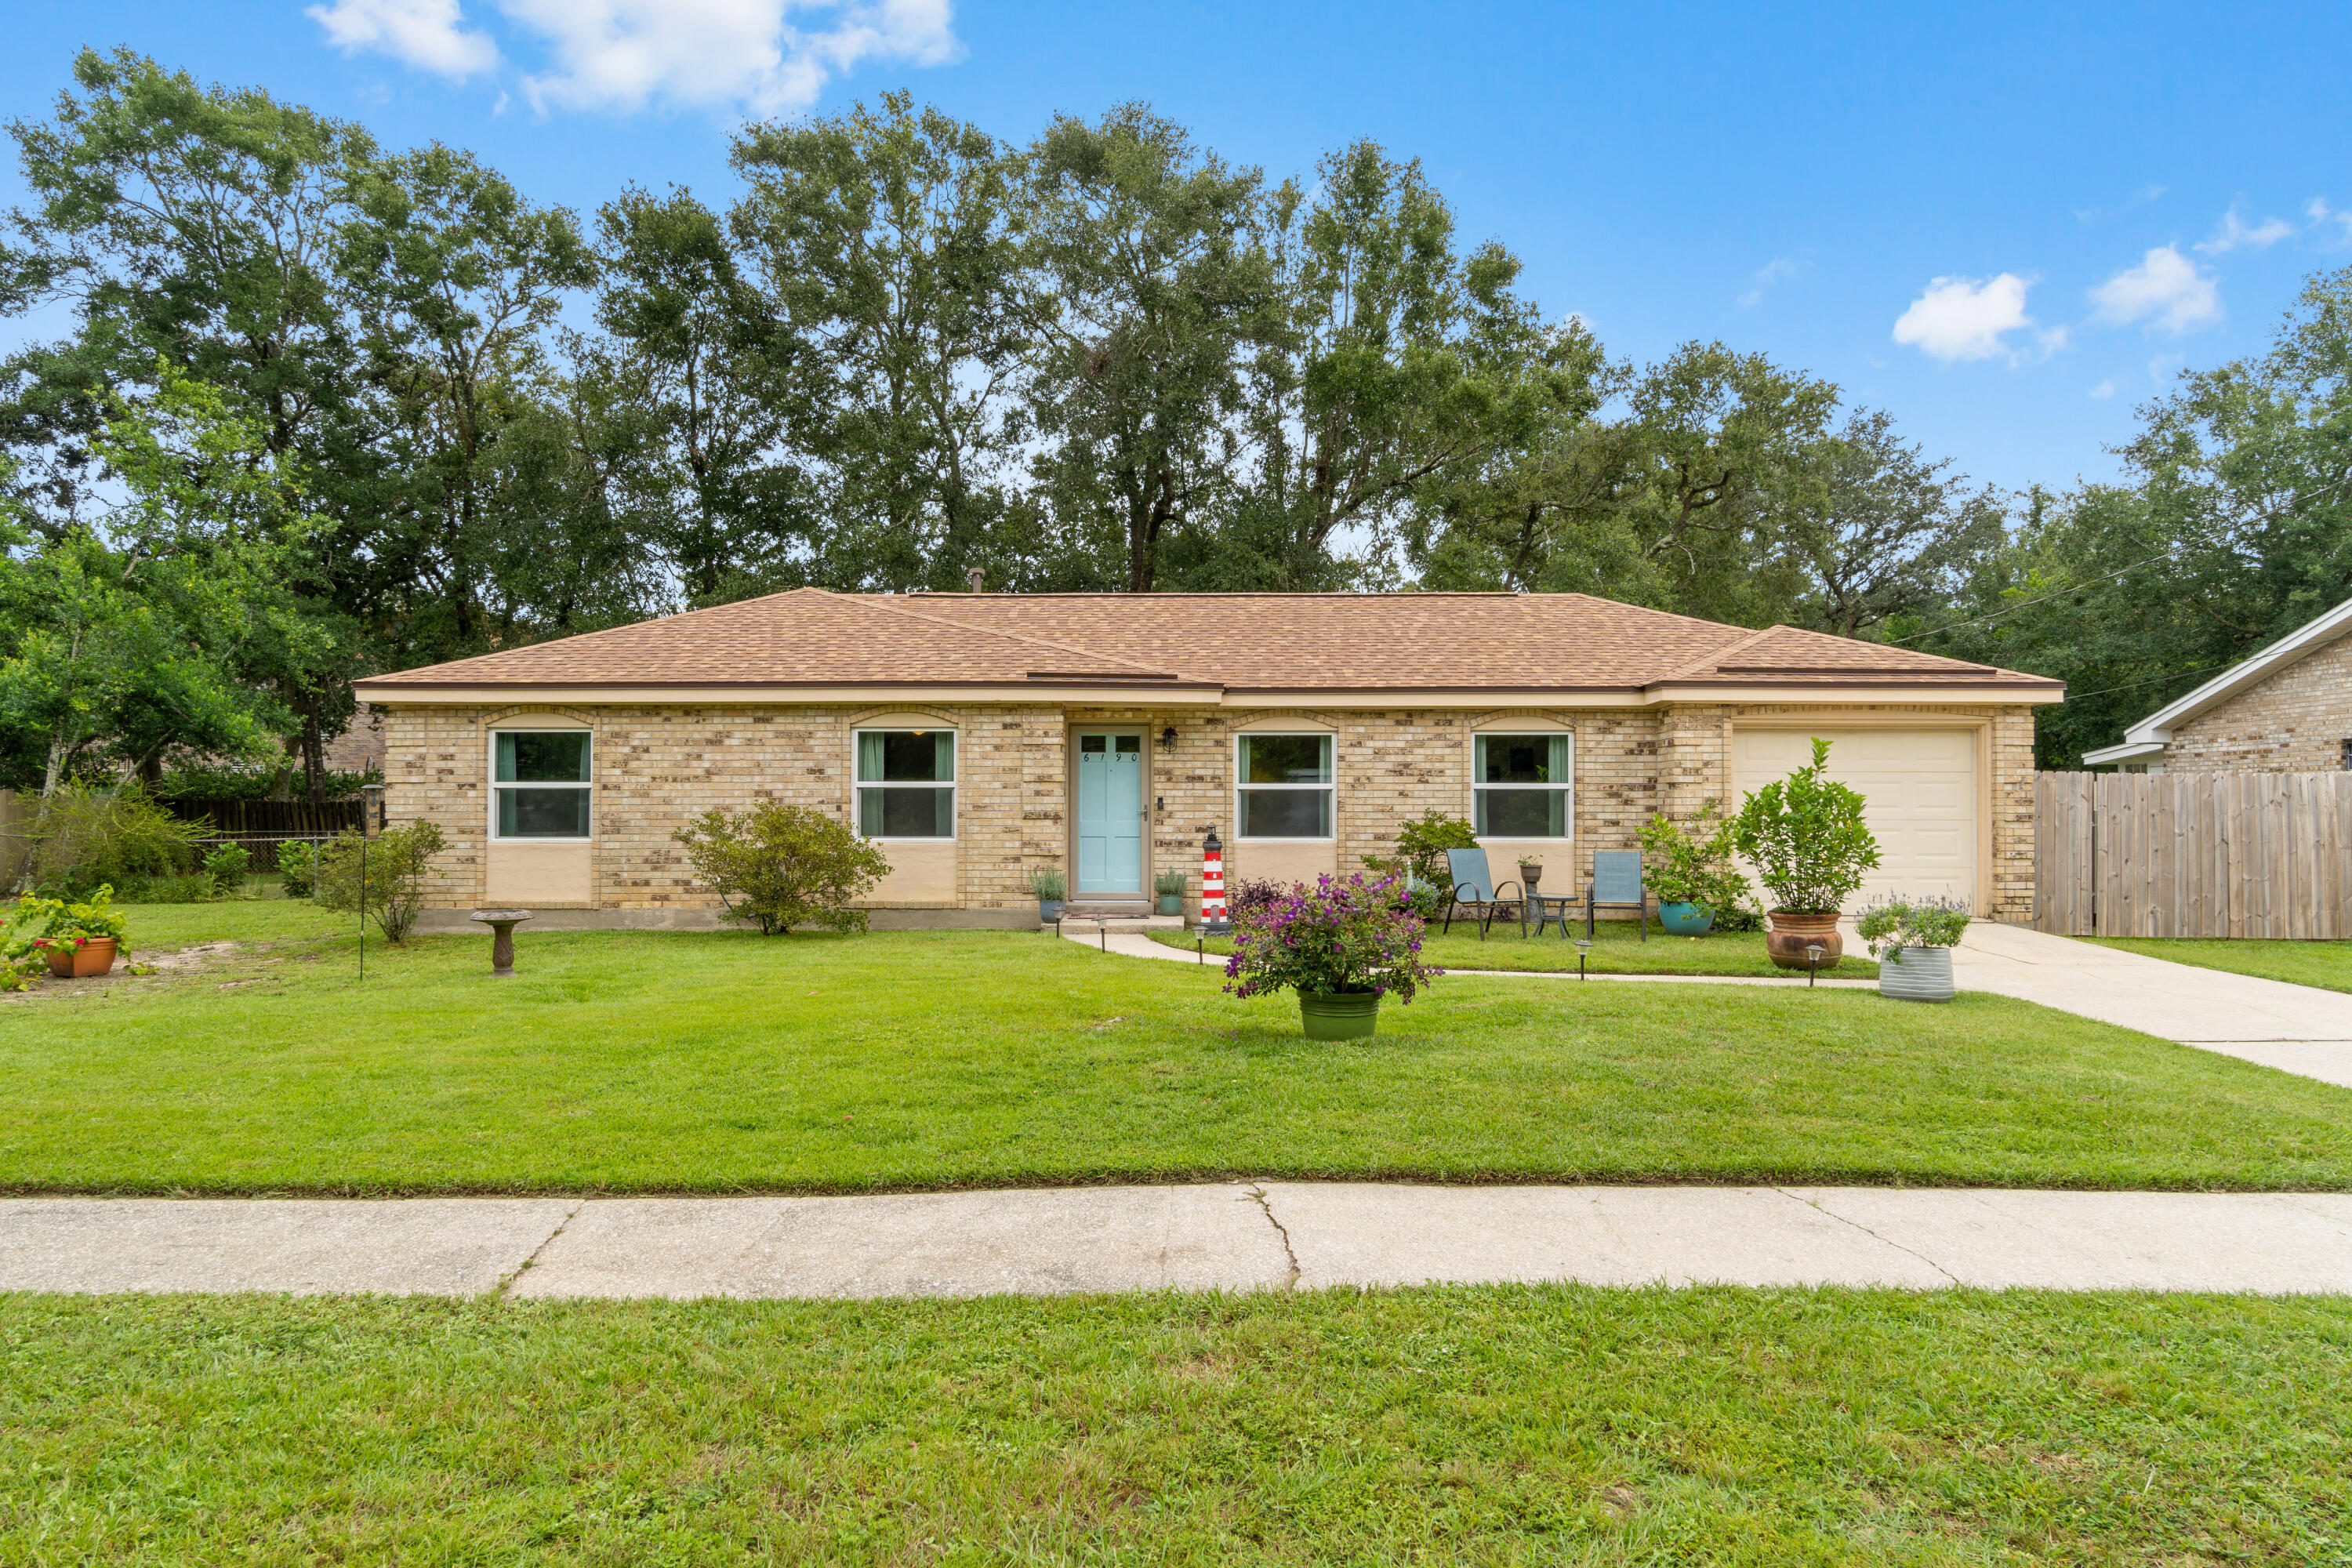 Perfectly located... this 3 bedroom, 2 bath all brick home is in the sidewalk neighborhood of Belved